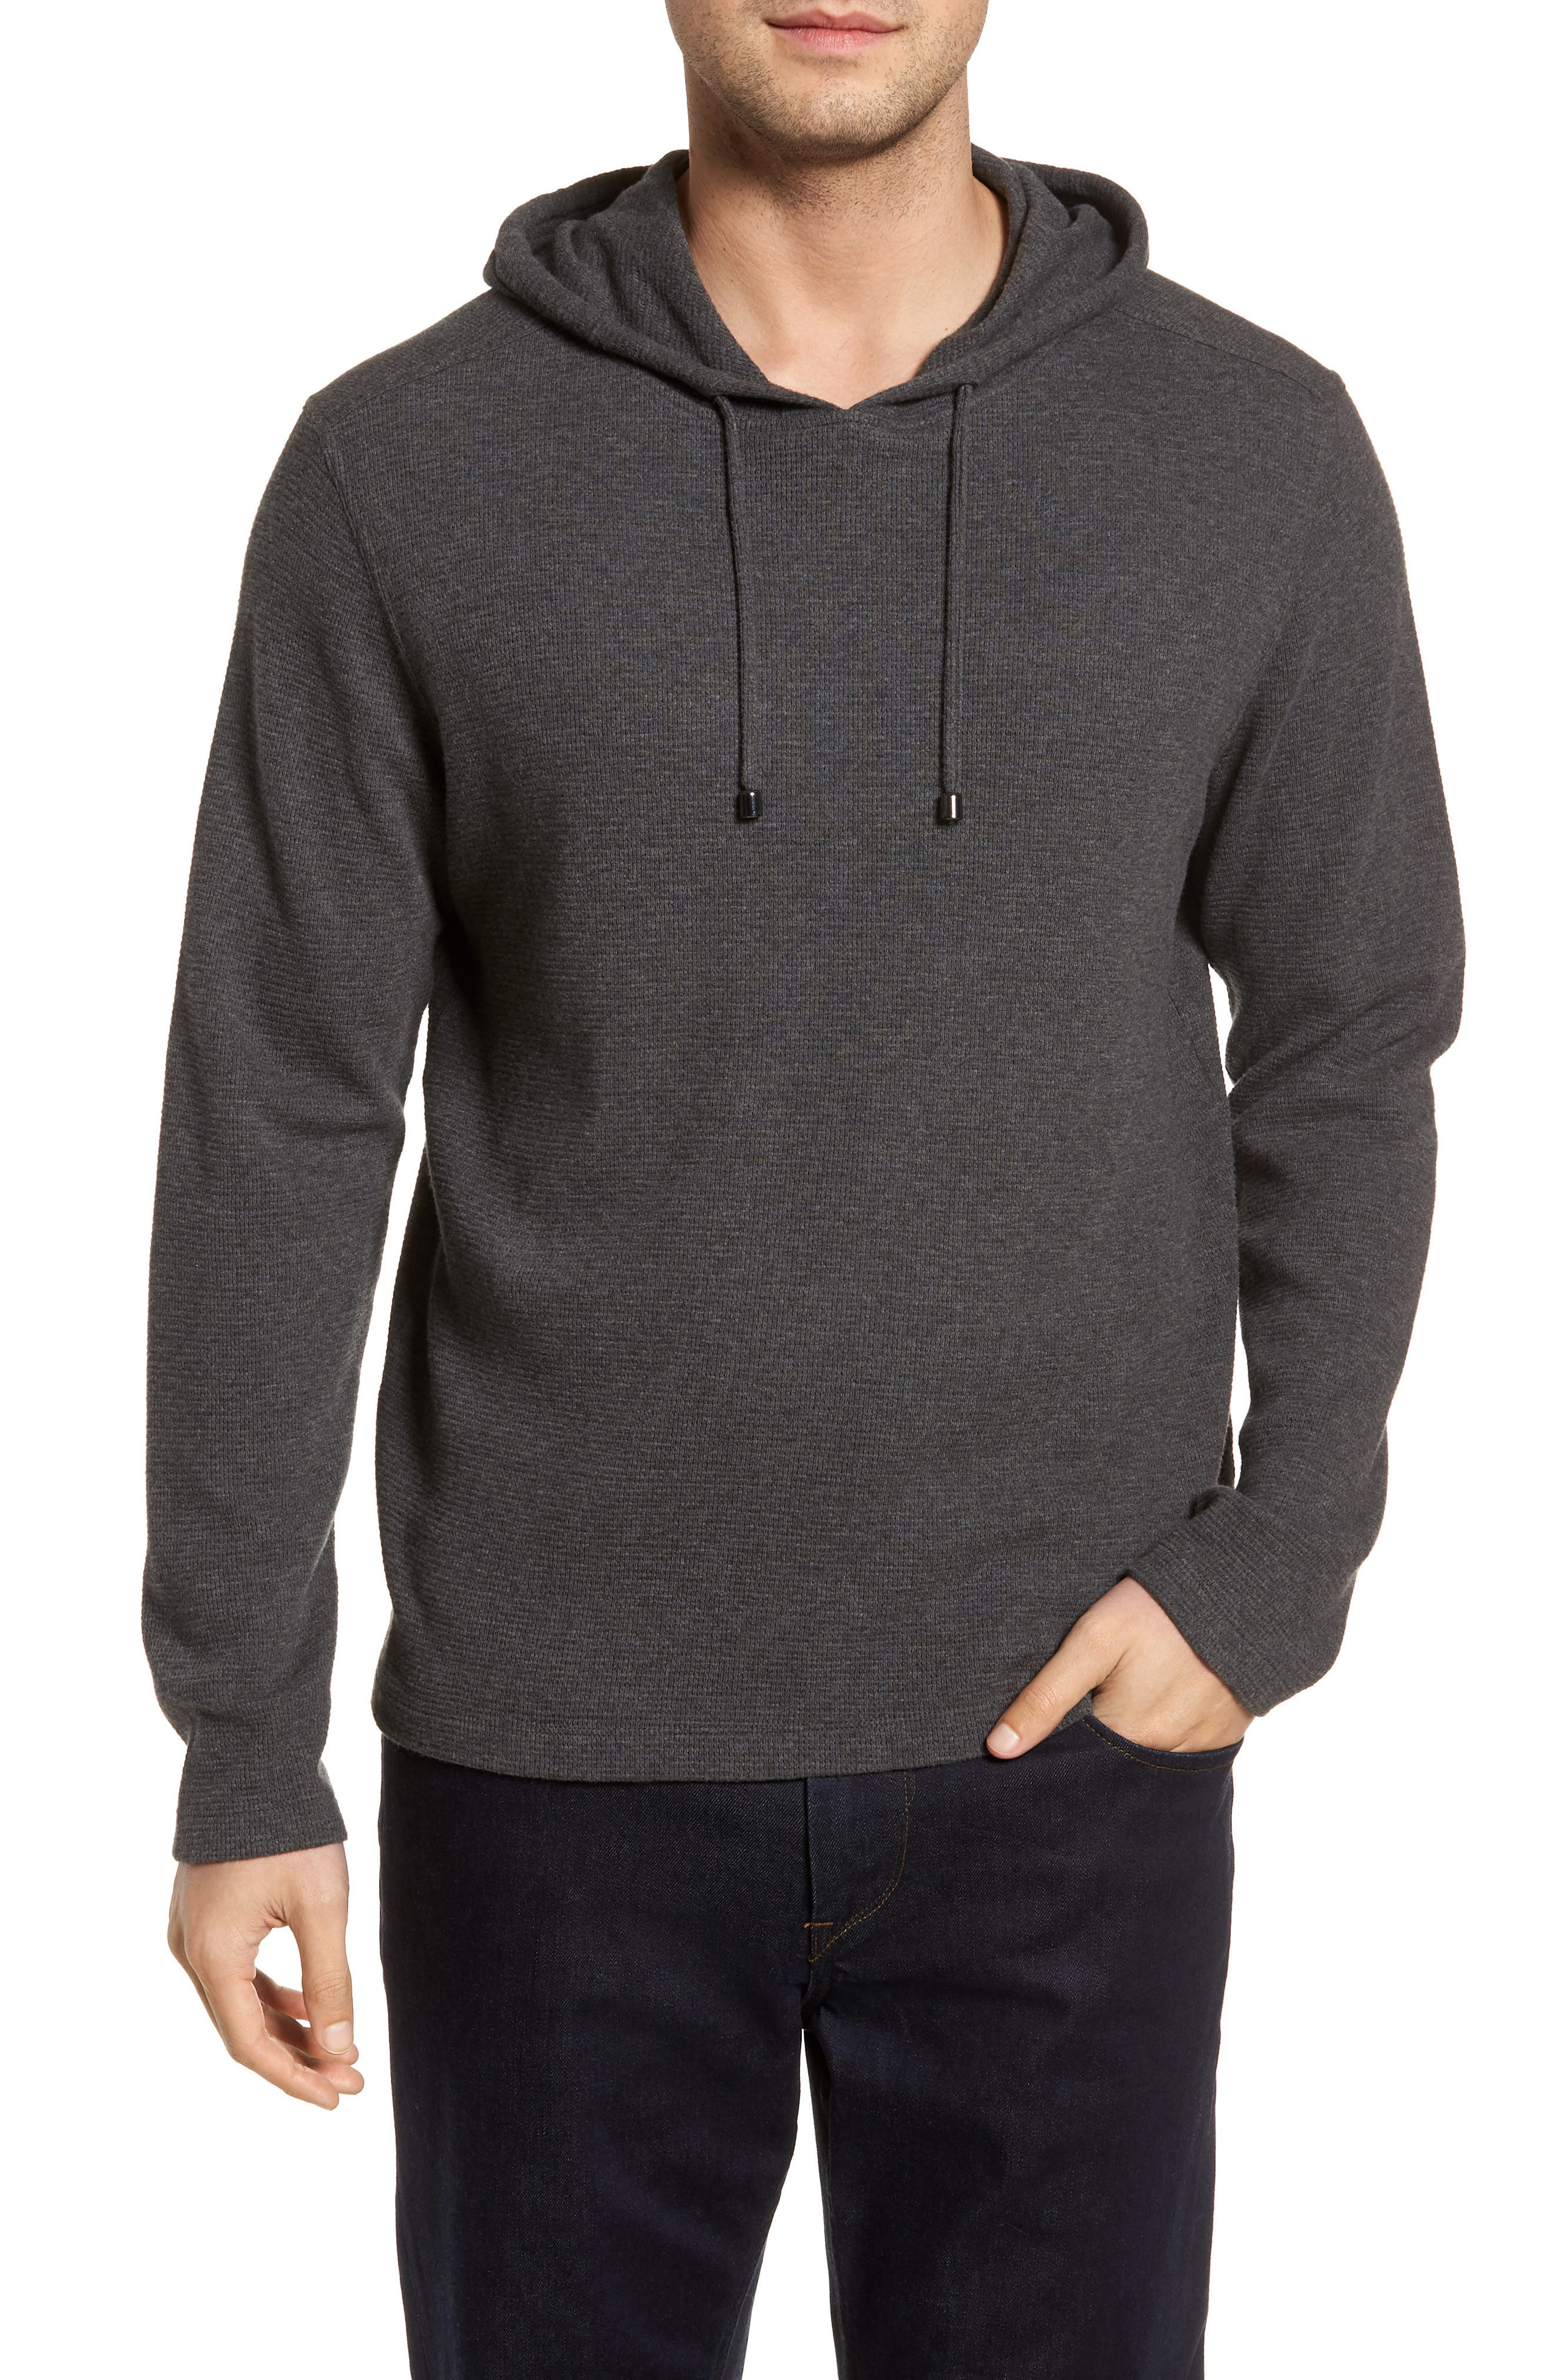 Wilson Pullover Hoodie,                             Main thumbnail 1, color,                             CHARCOAL